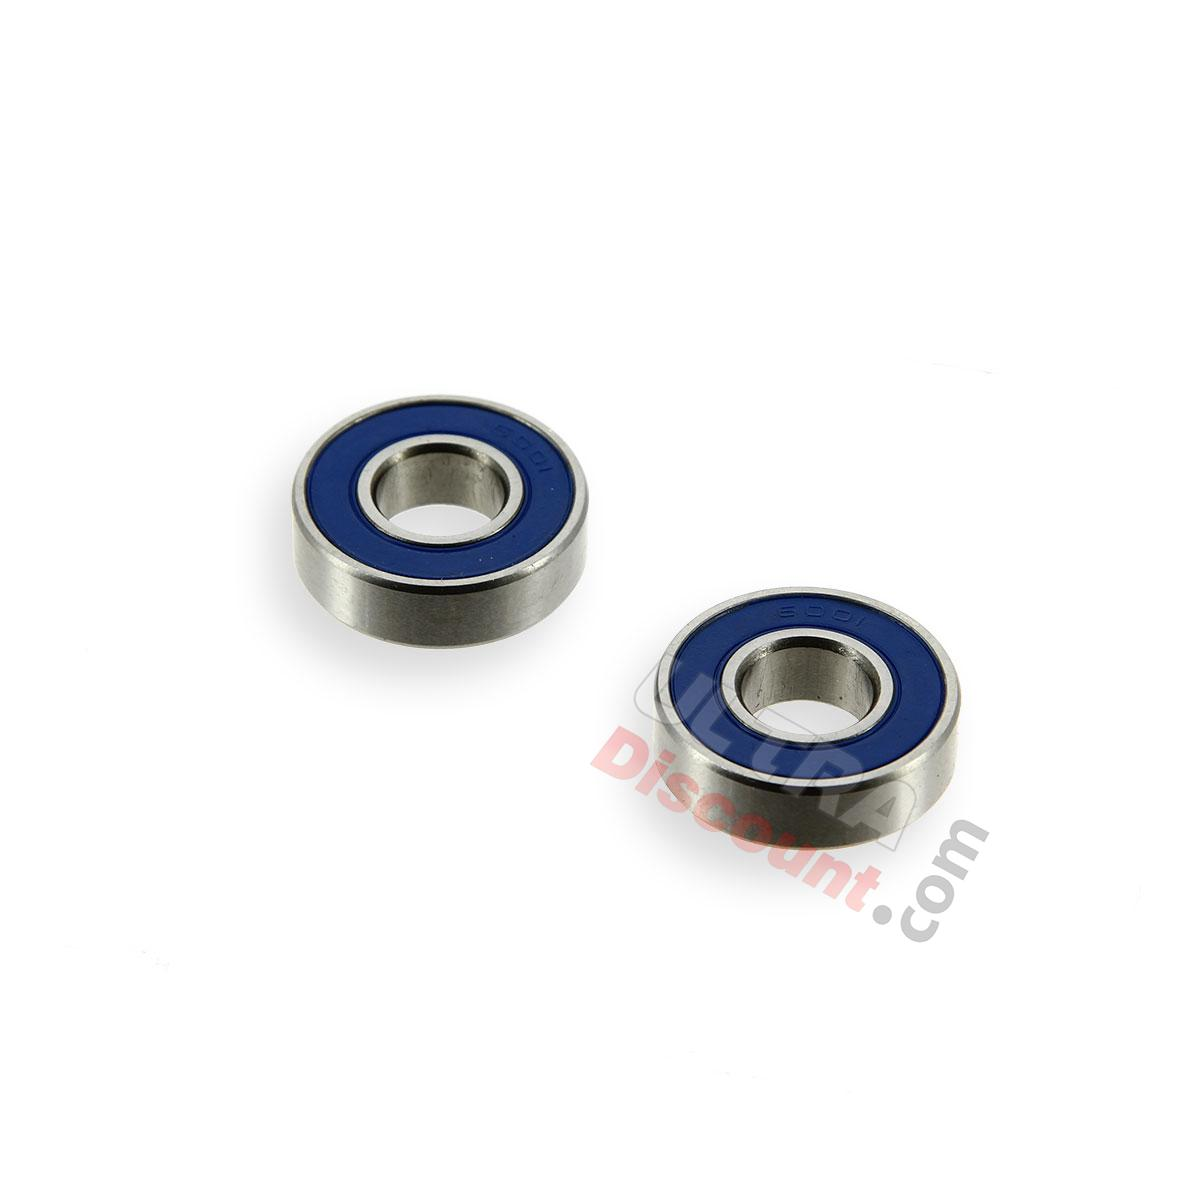 pair of high quality wheel bearings for cross pocket bike wheels and tires cross pocket bike. Black Bedroom Furniture Sets. Home Design Ideas